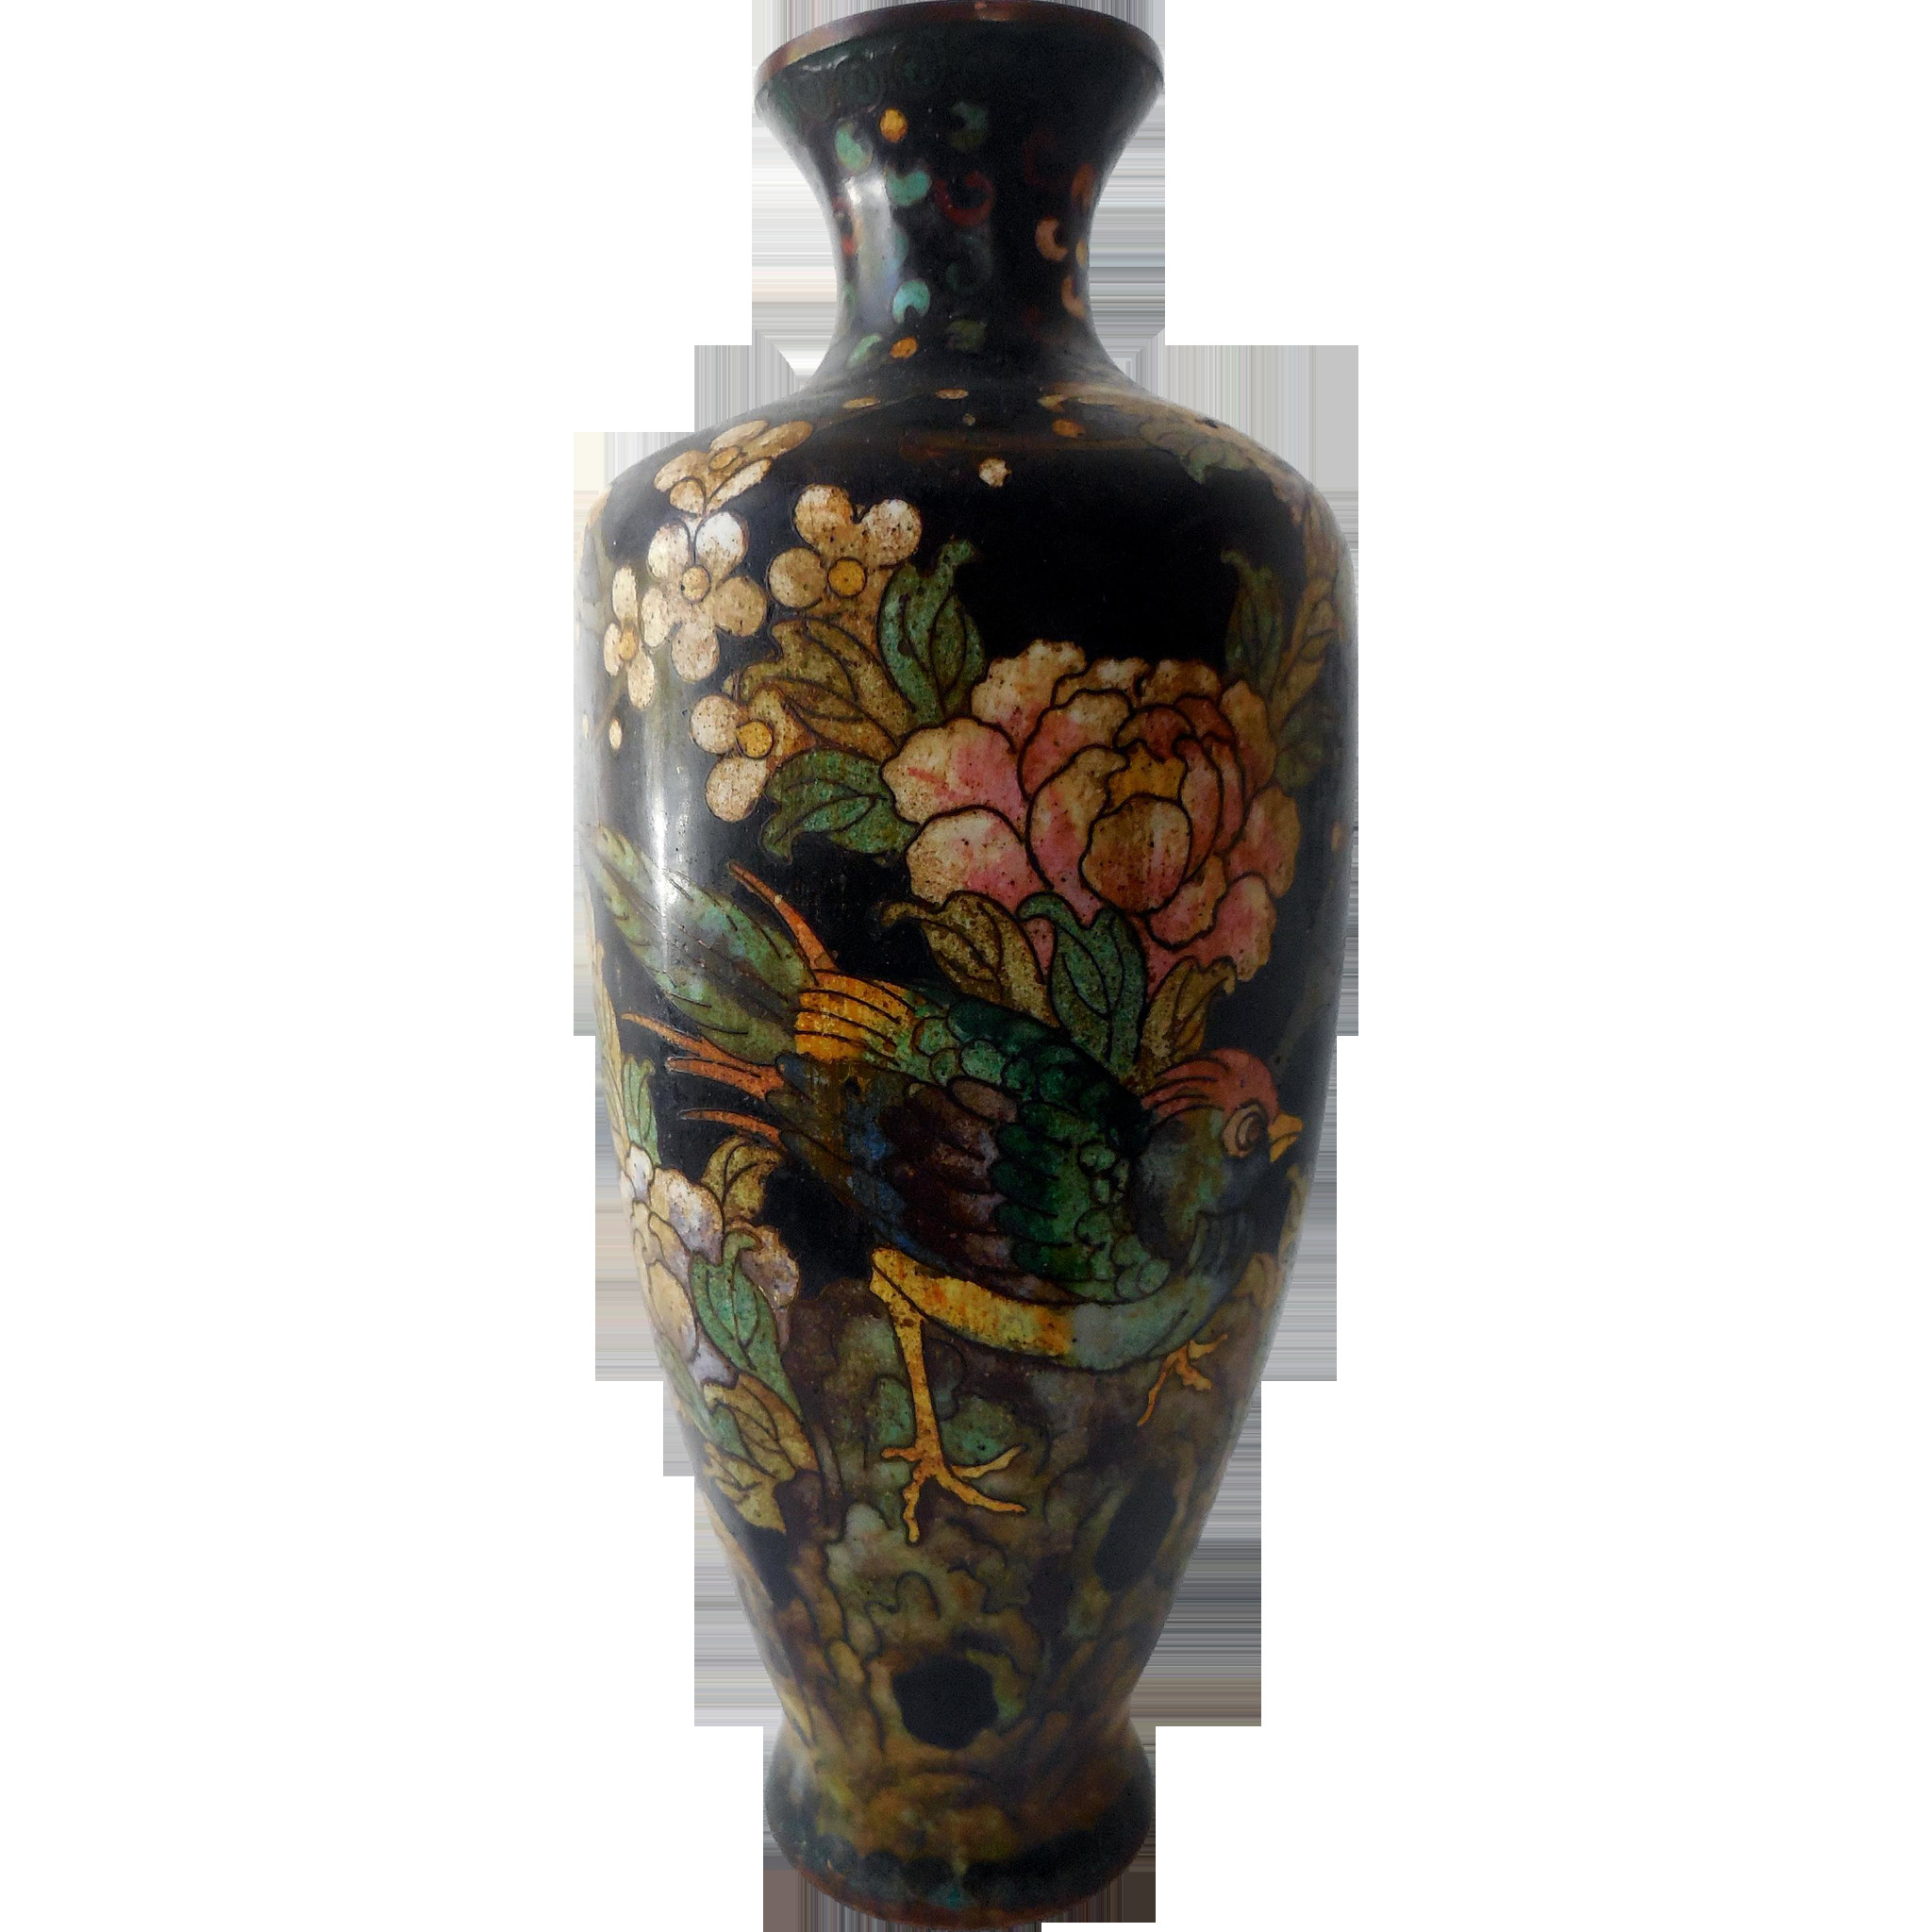 antique silver vases for sale of antique chinese cloisonne vase 19th c great ming mark japanese with regard to antique chinese cloisonne vase 19th c great ming mark